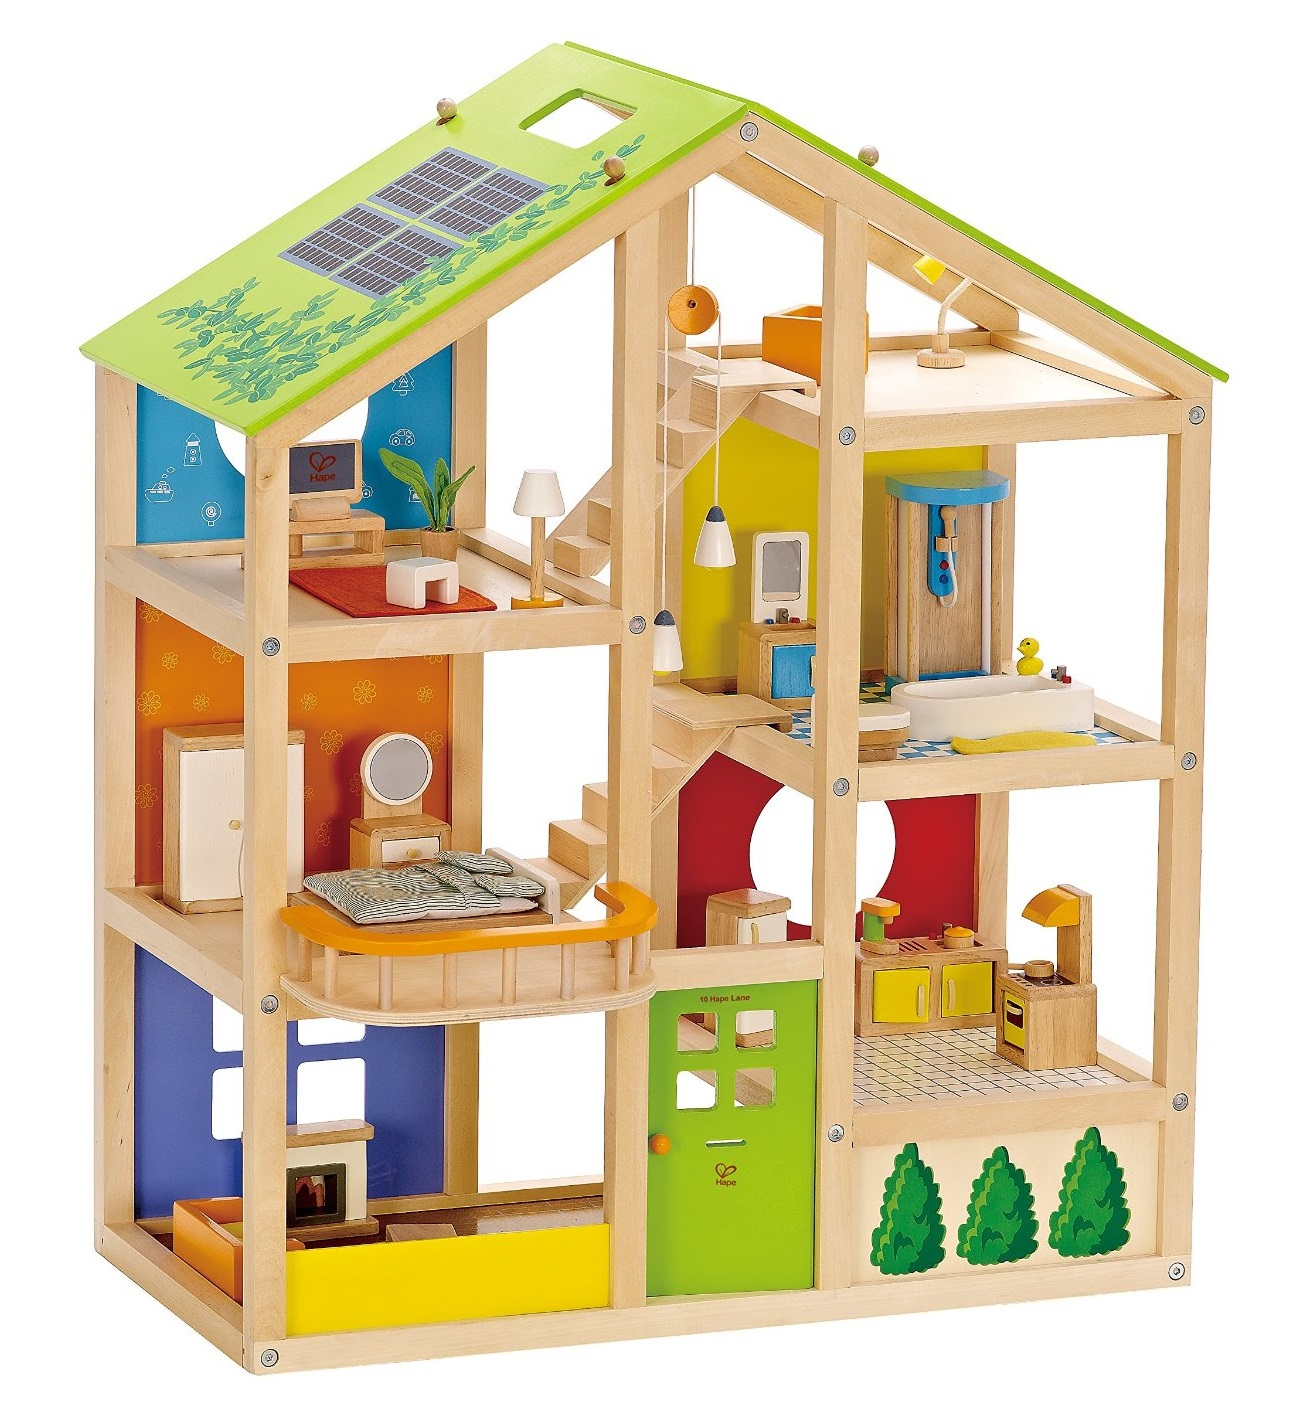 best wooden dollhouse 3 selected models. Black Bedroom Furniture Sets. Home Design Ideas